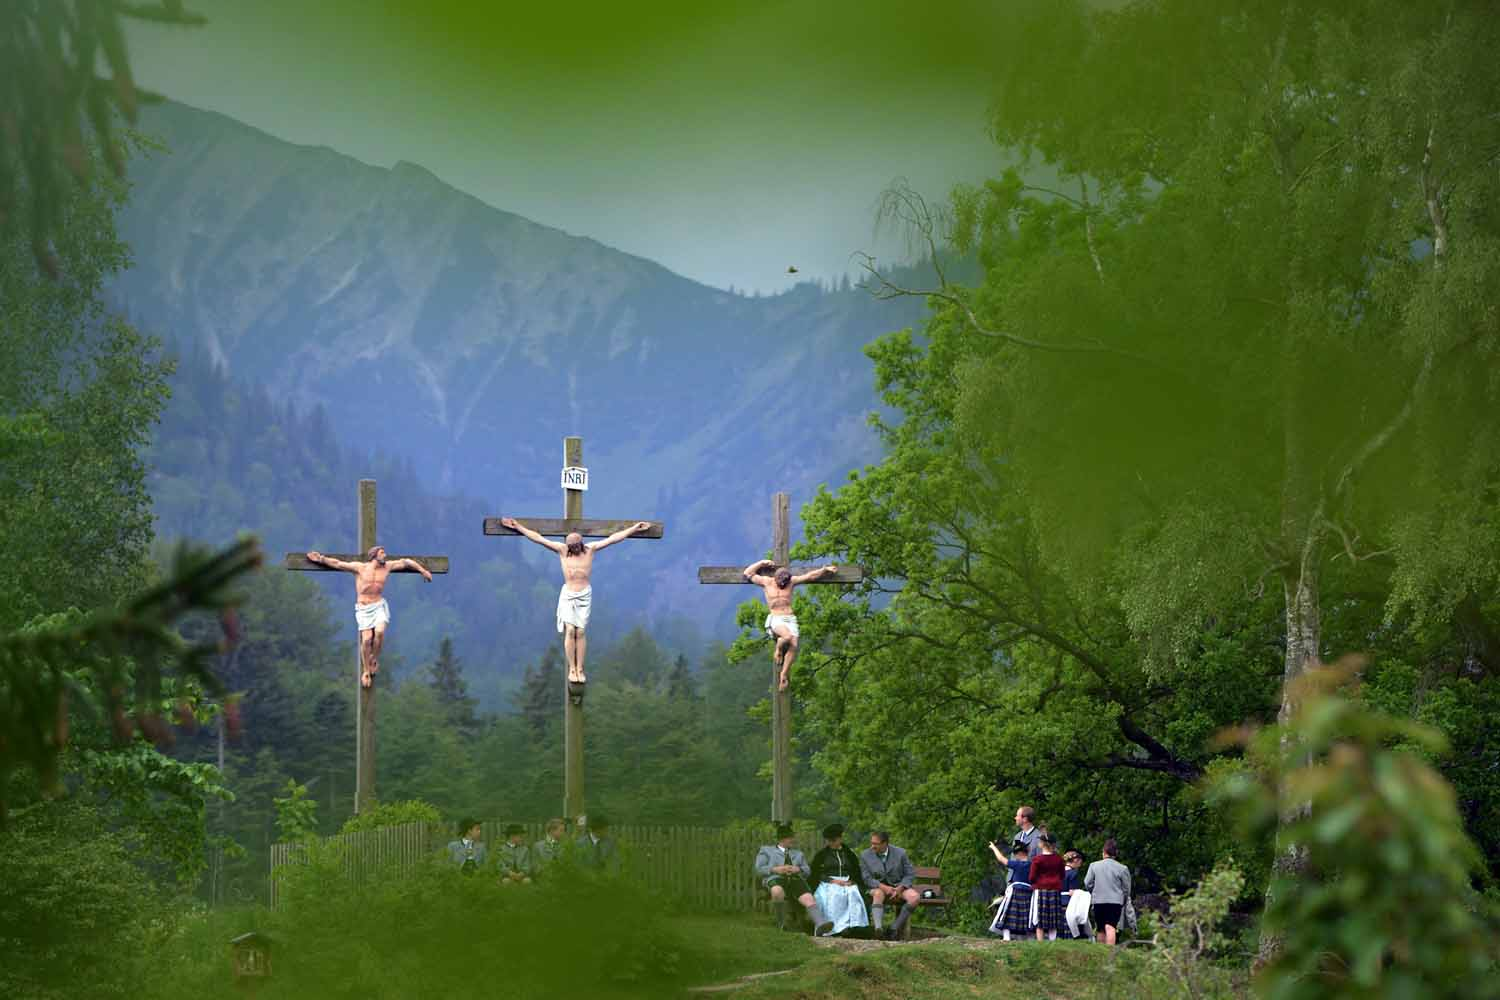 May 29, 2014.  Pilgrims in traditional Bavarian folk costumes stand beneath three crosses on the Kalvarienberg-mountain and follow an outdoor mass to celebrate Ascension (in German called Christi Himmelfahrt) at the open-air altar at Birkenstein on near Fischbachau, Germany.